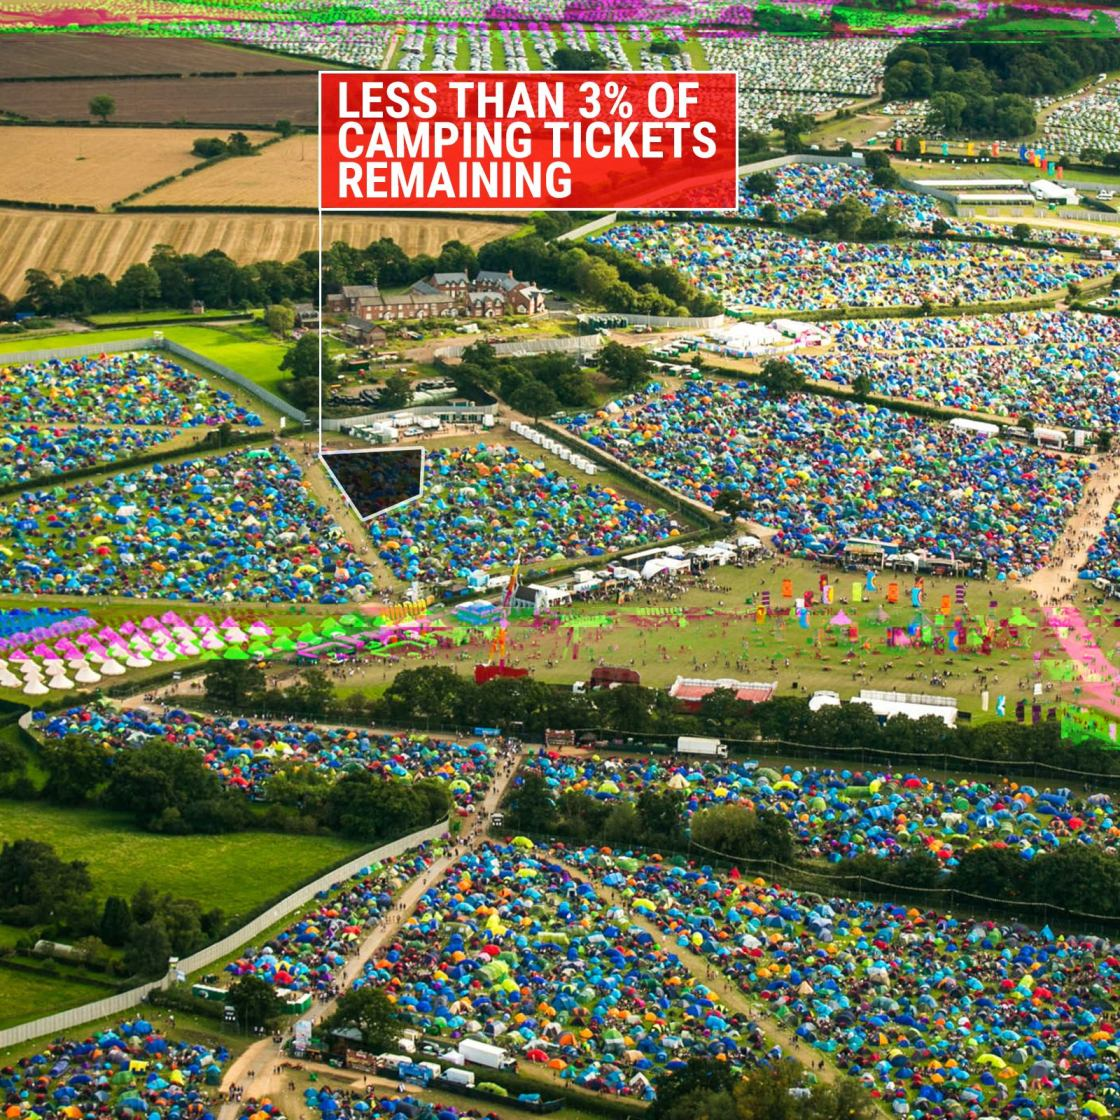 Less than 3% of camping tickets remaining...